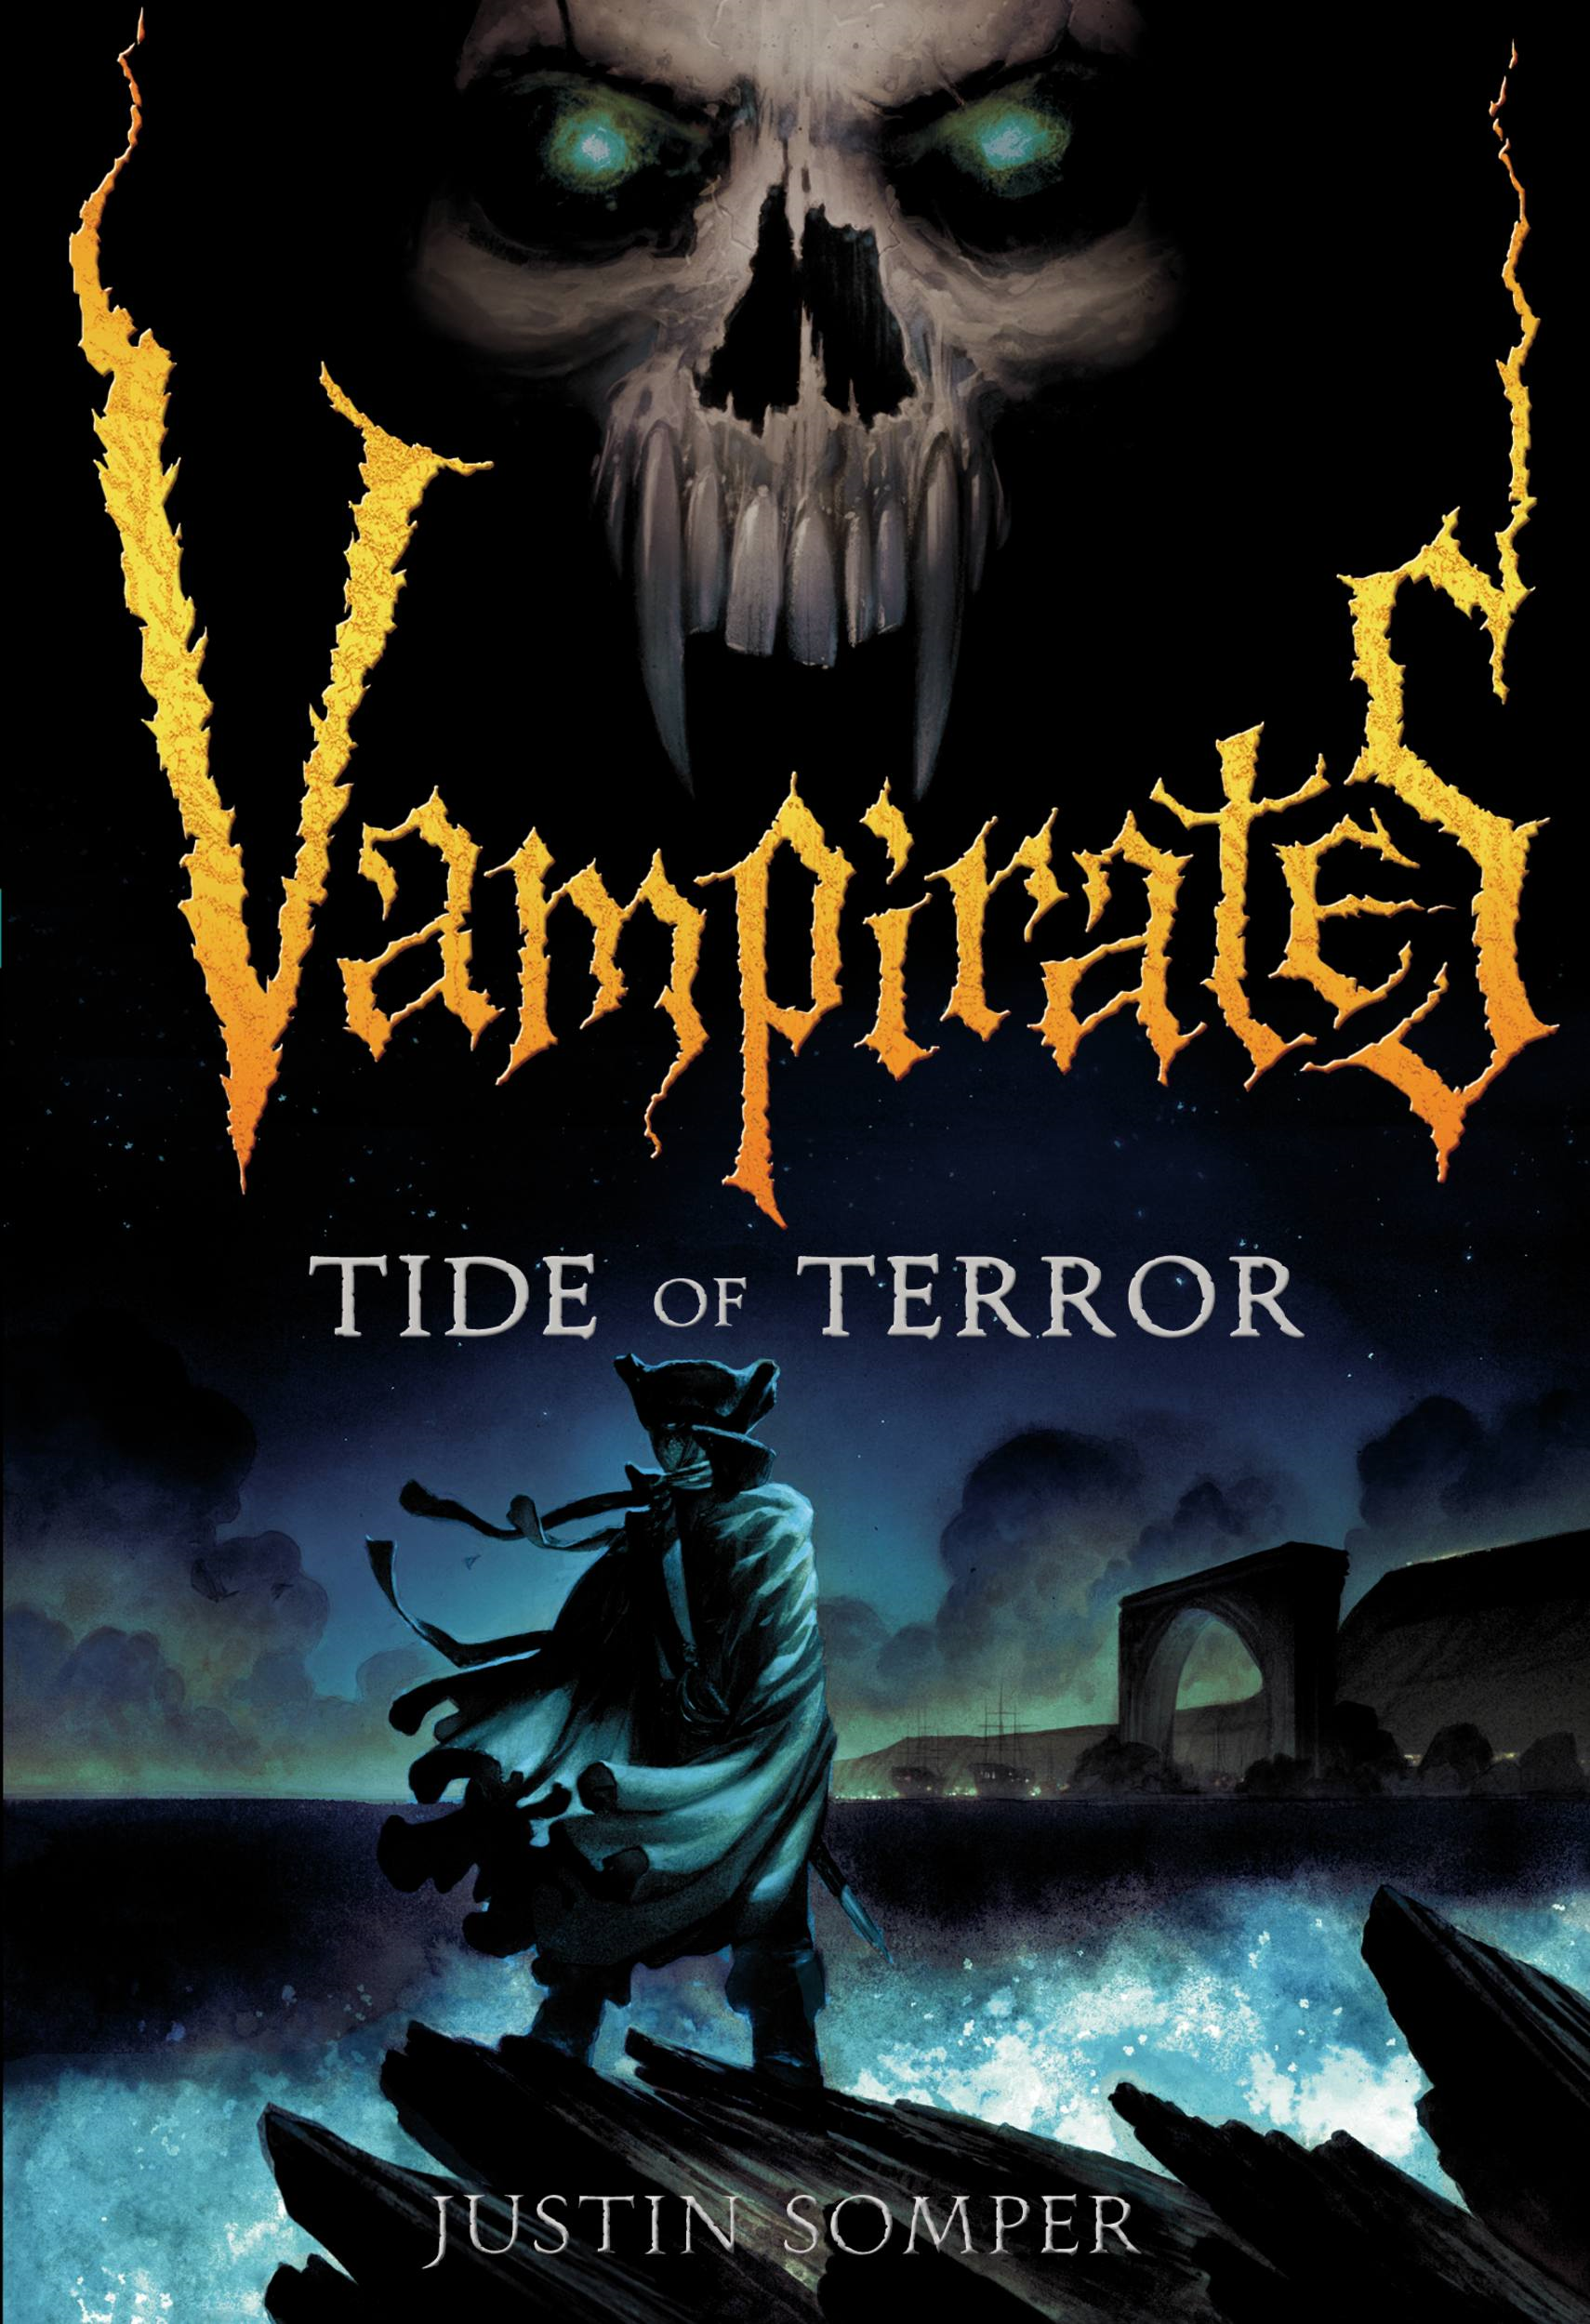 Vampirates: Tide of Terror